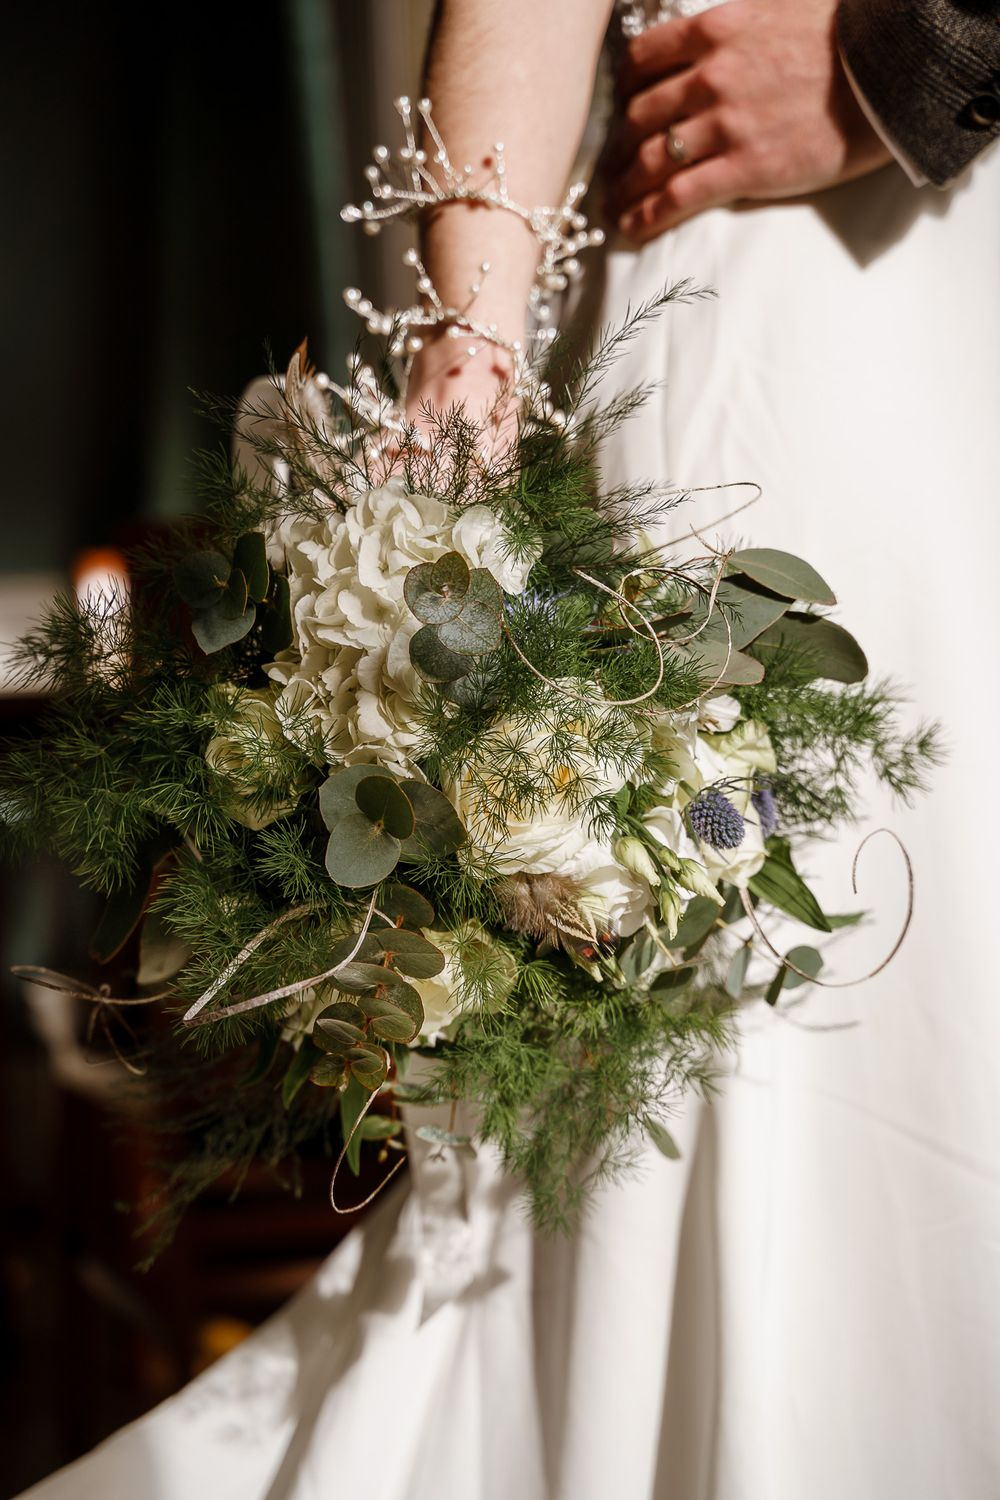 Bride holds a green and white bouquet by her side - Winchester wedding photography